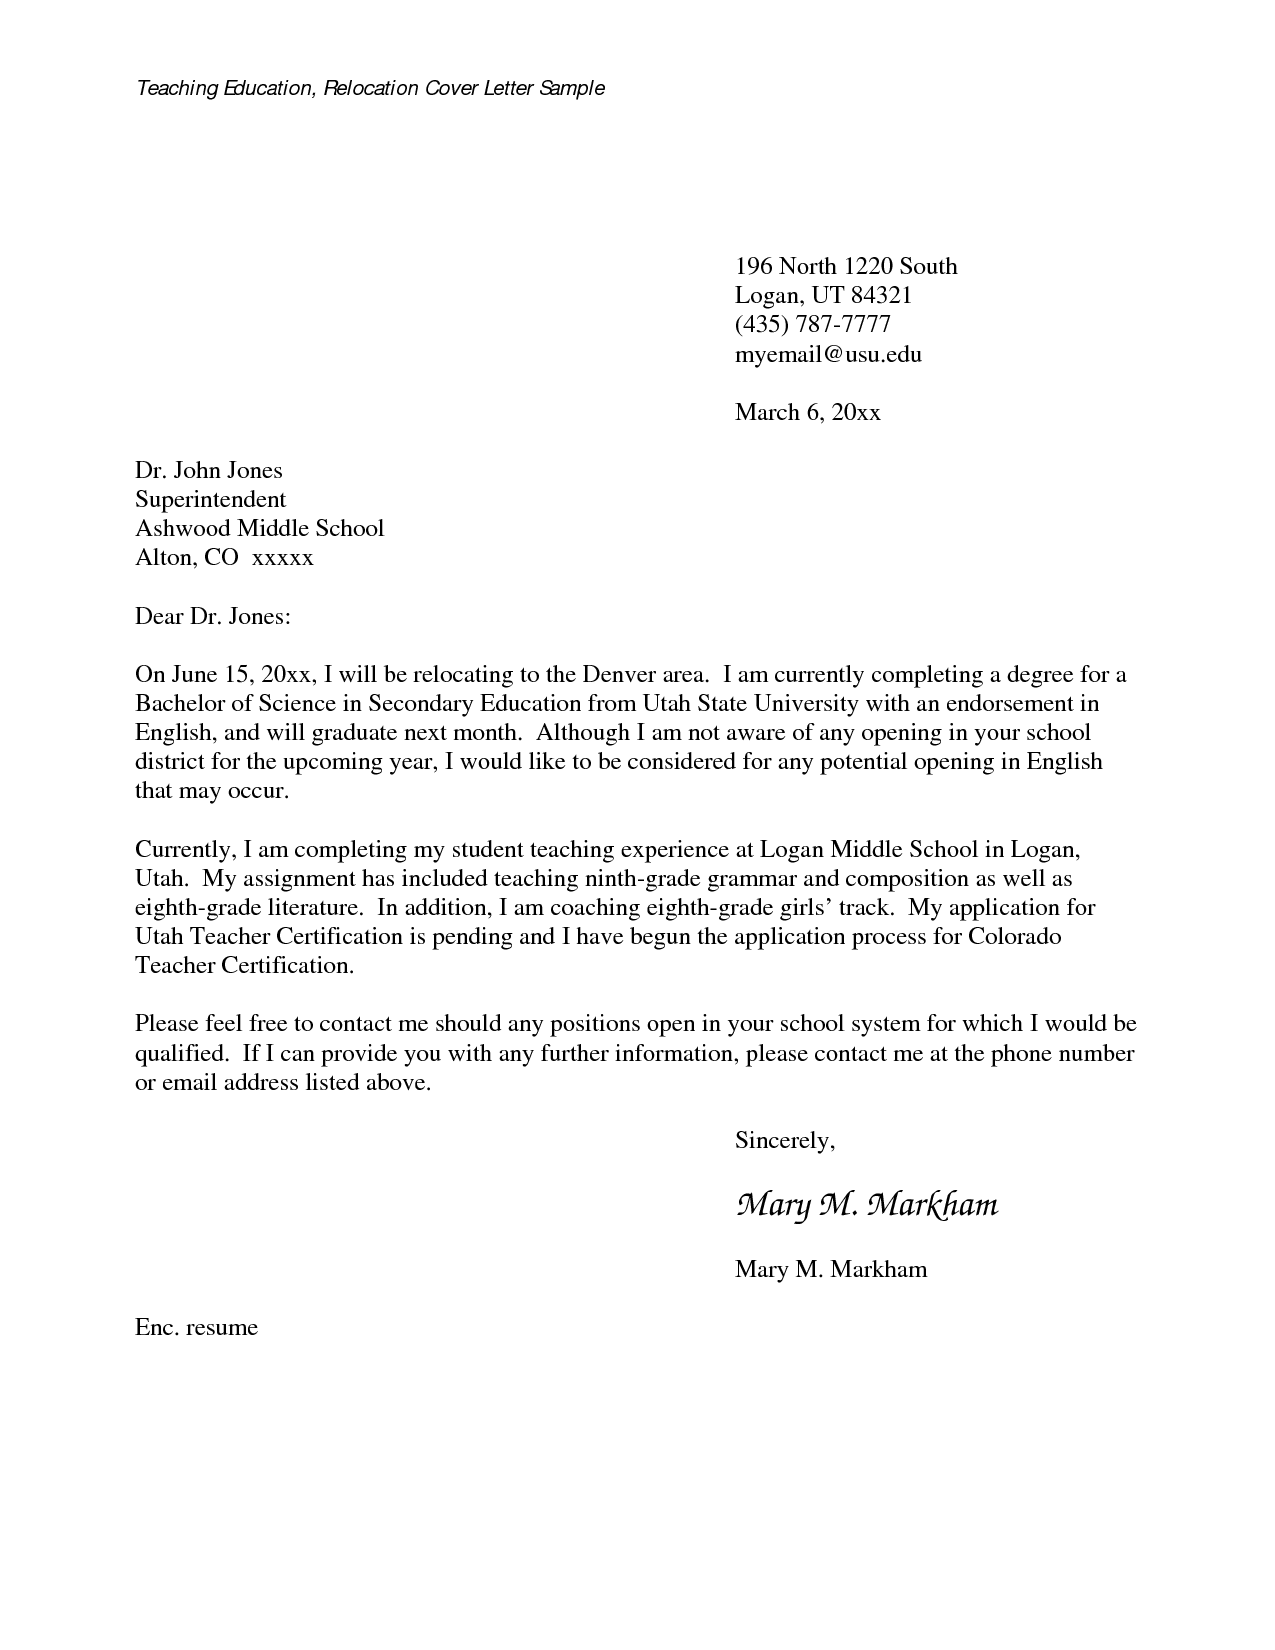 Letters For Teachers Relocating Medwebcomrelocation Cover